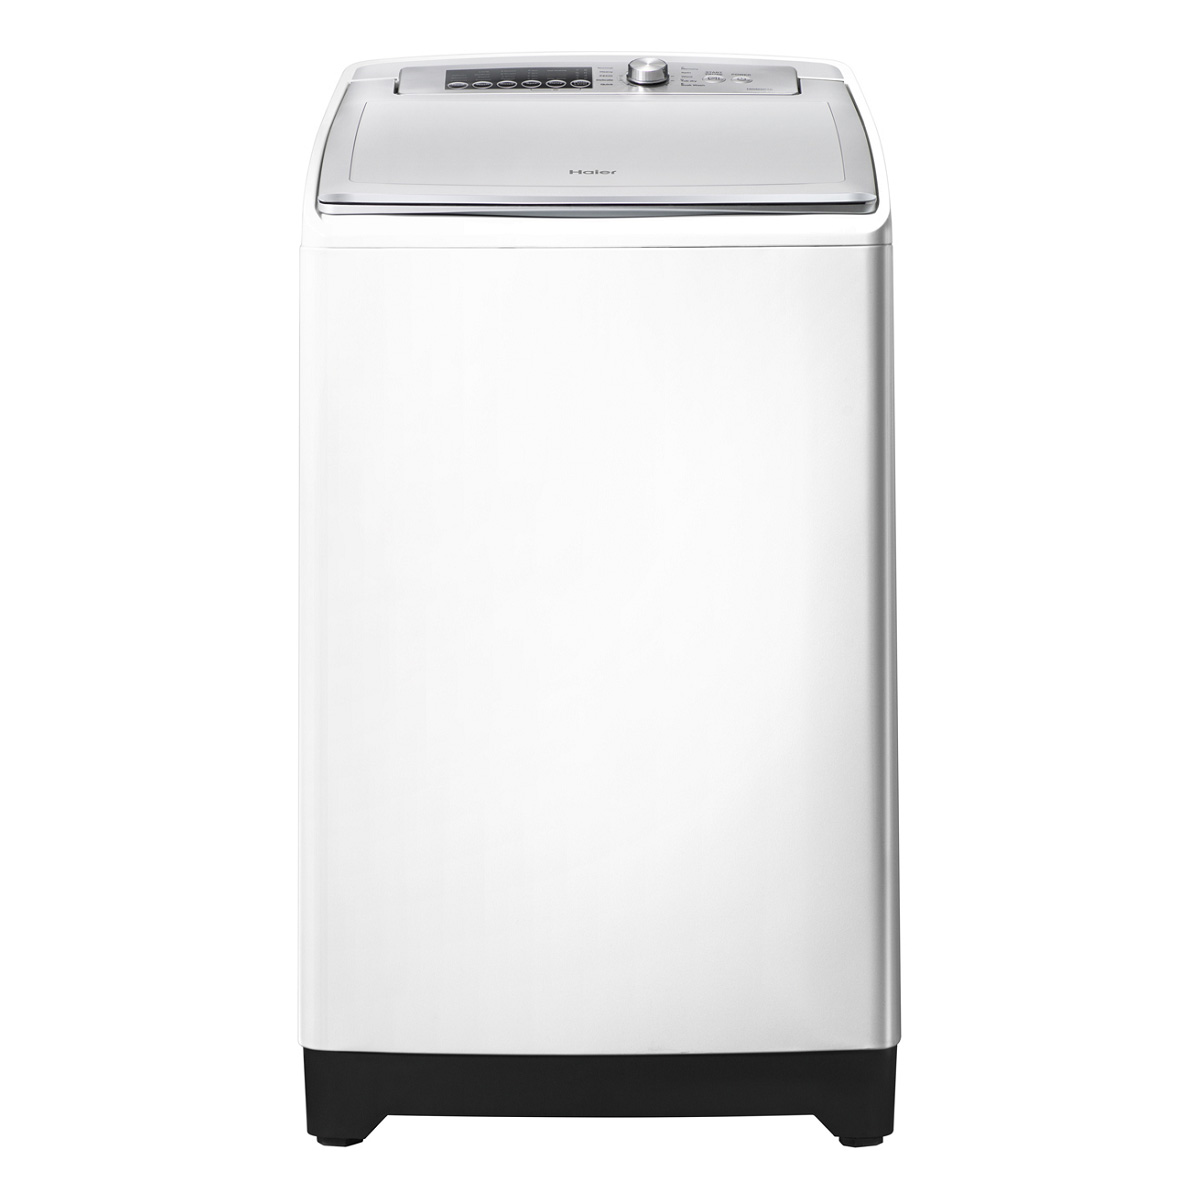 haier washing machine haier hwmsp60 6kg top load washing machine up to 60 12985